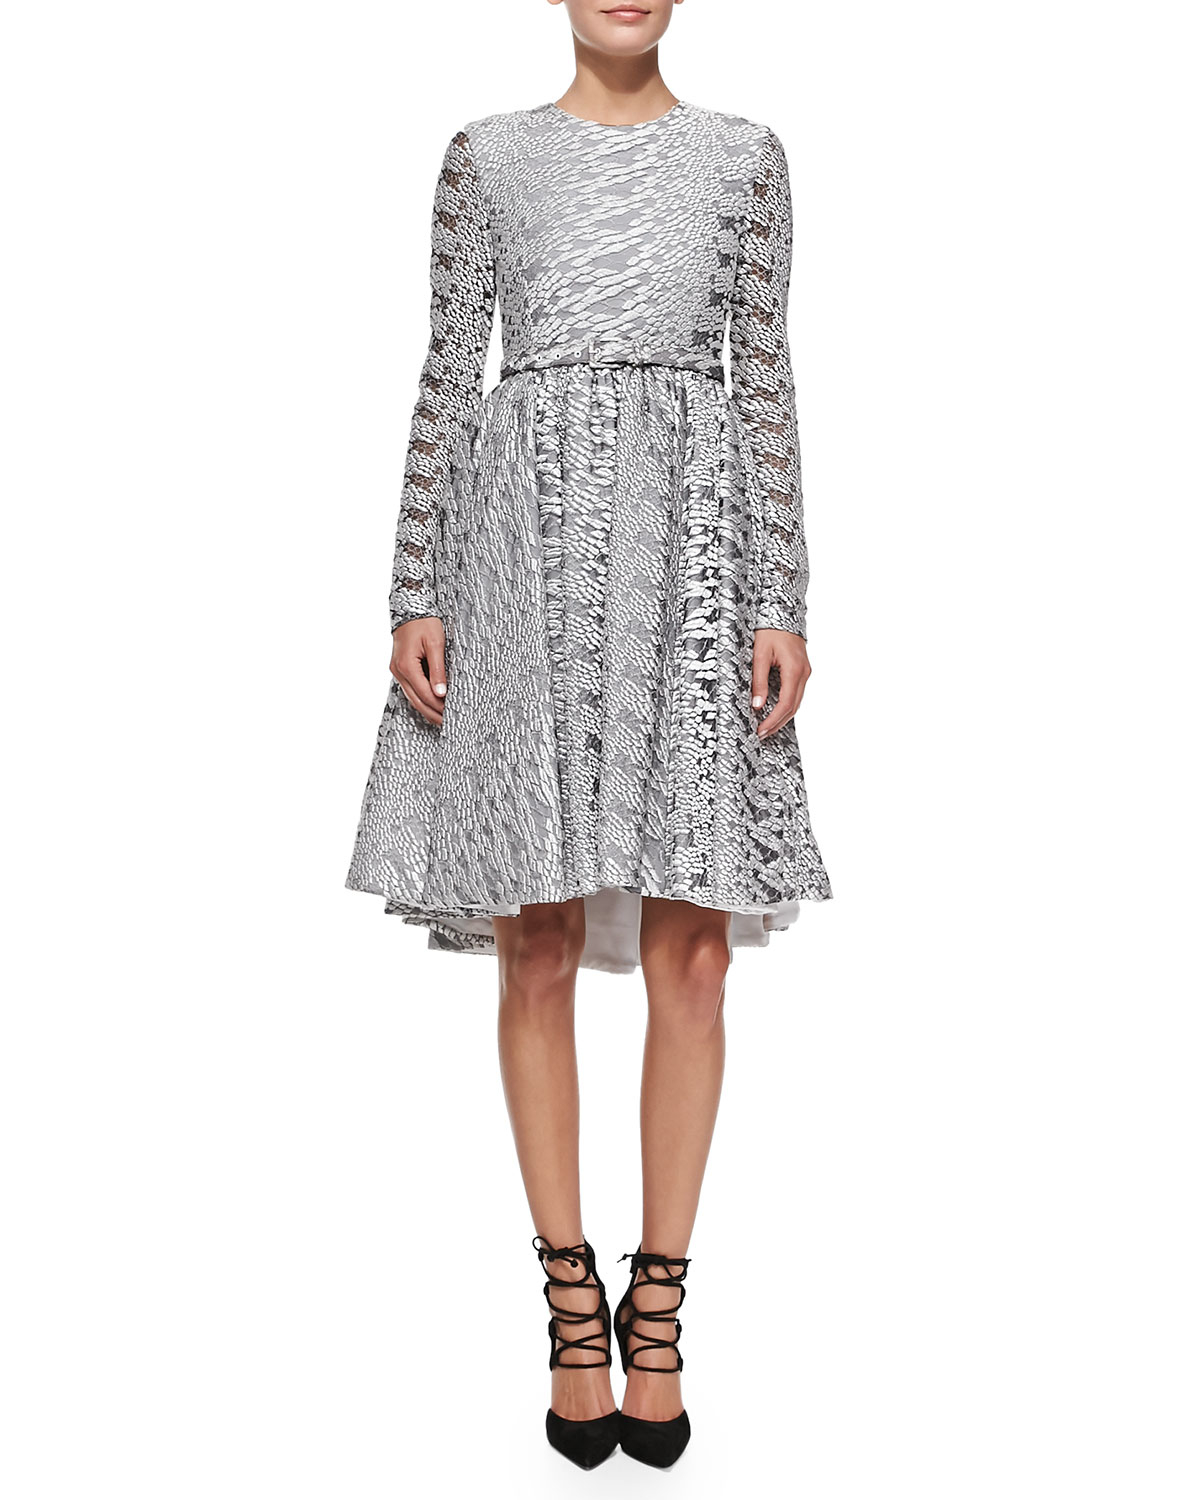 Christian Siriano Reptile Lace Cocktail Dress In Metallic